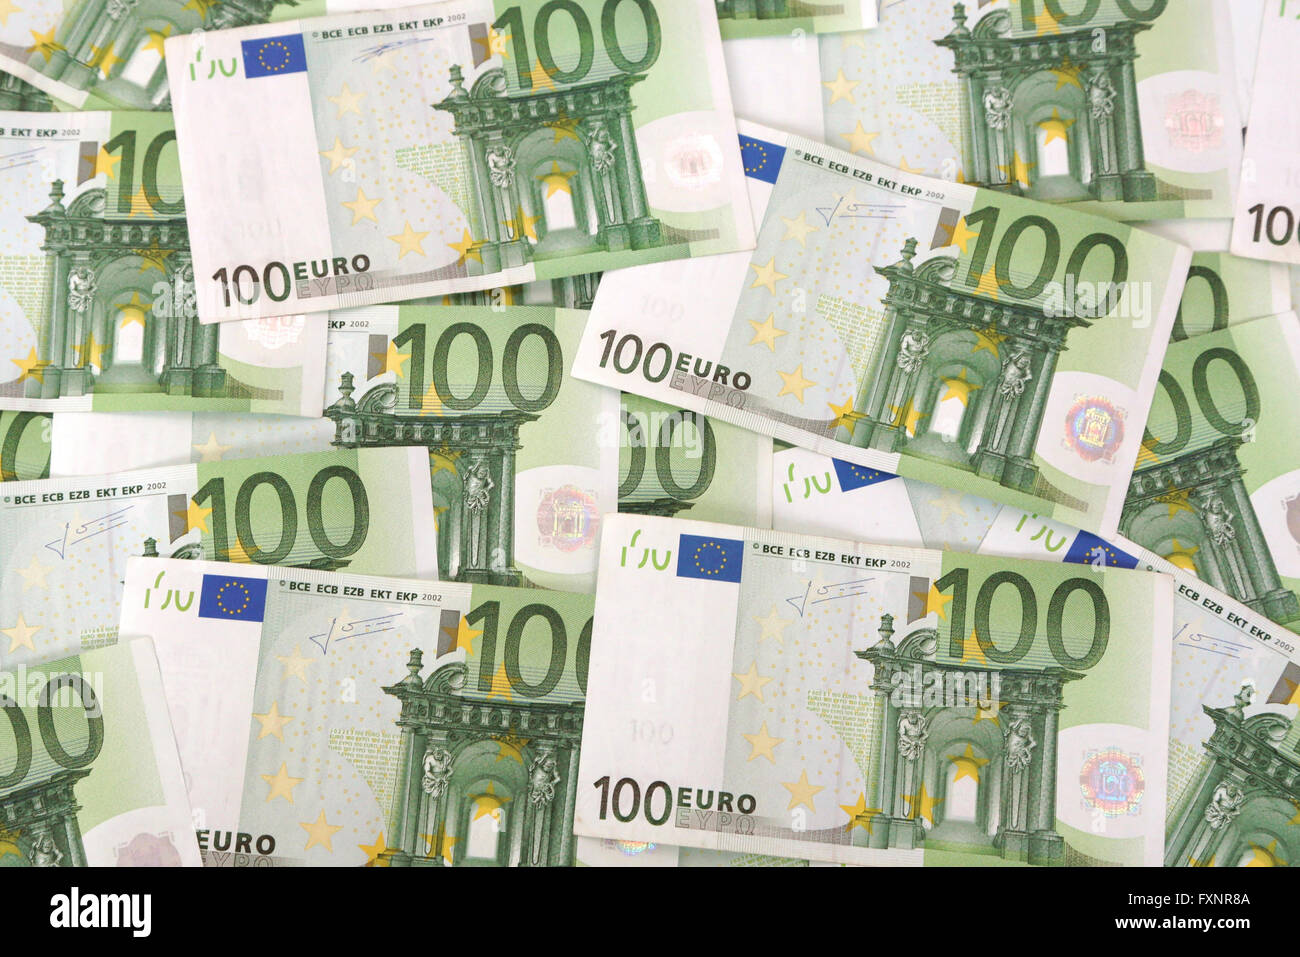 Many hundred euro notes Stock Photo